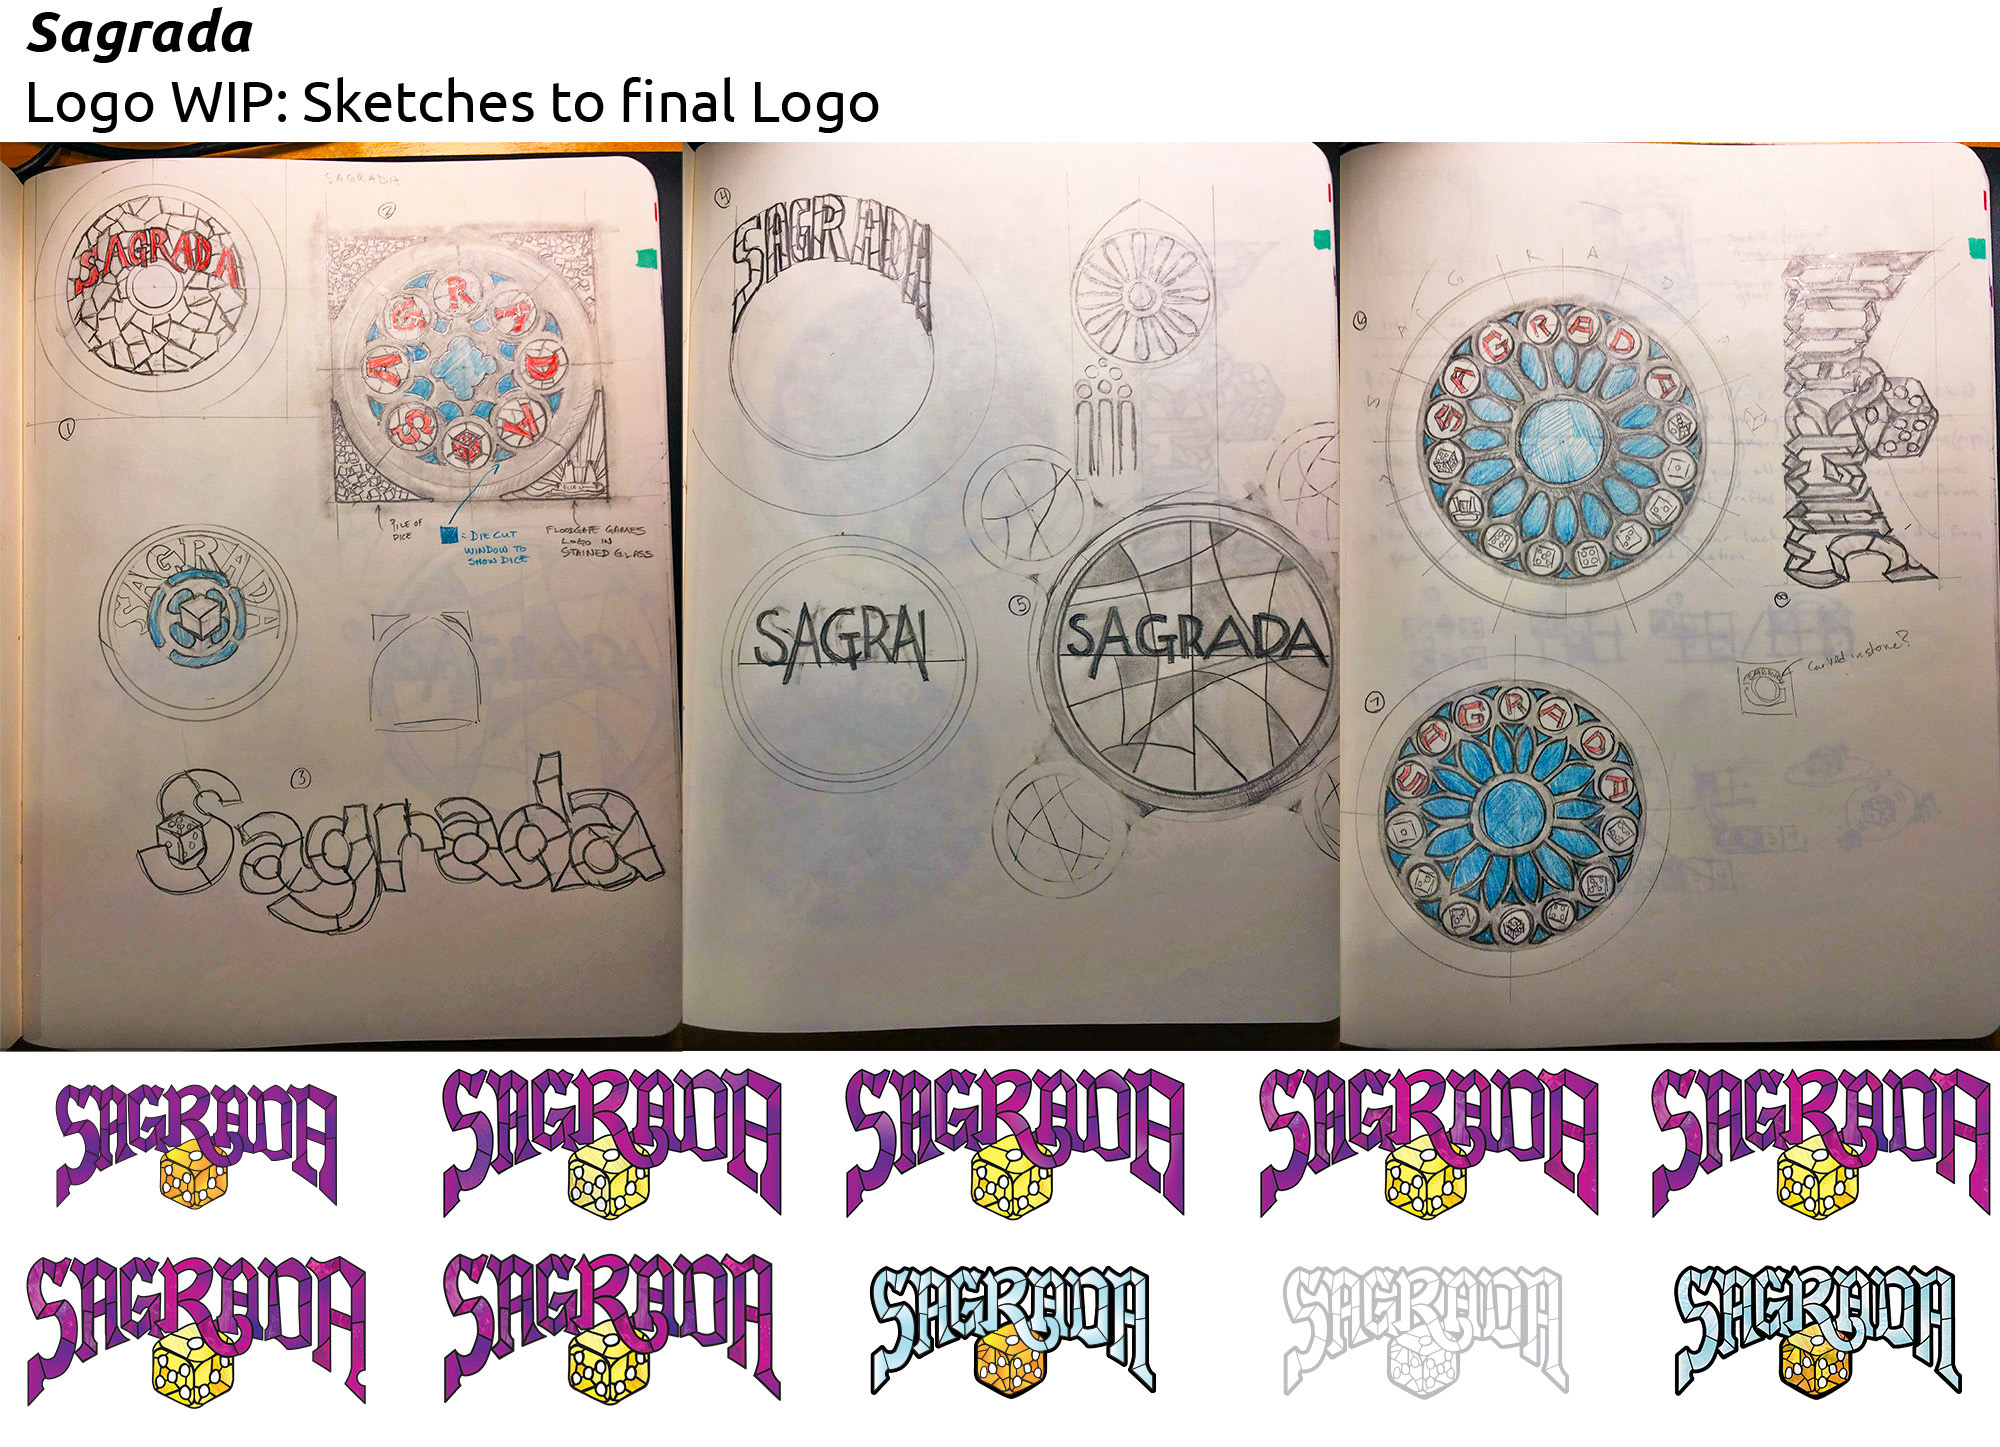 Sagrada - Prototype logo design illustrations and sketches